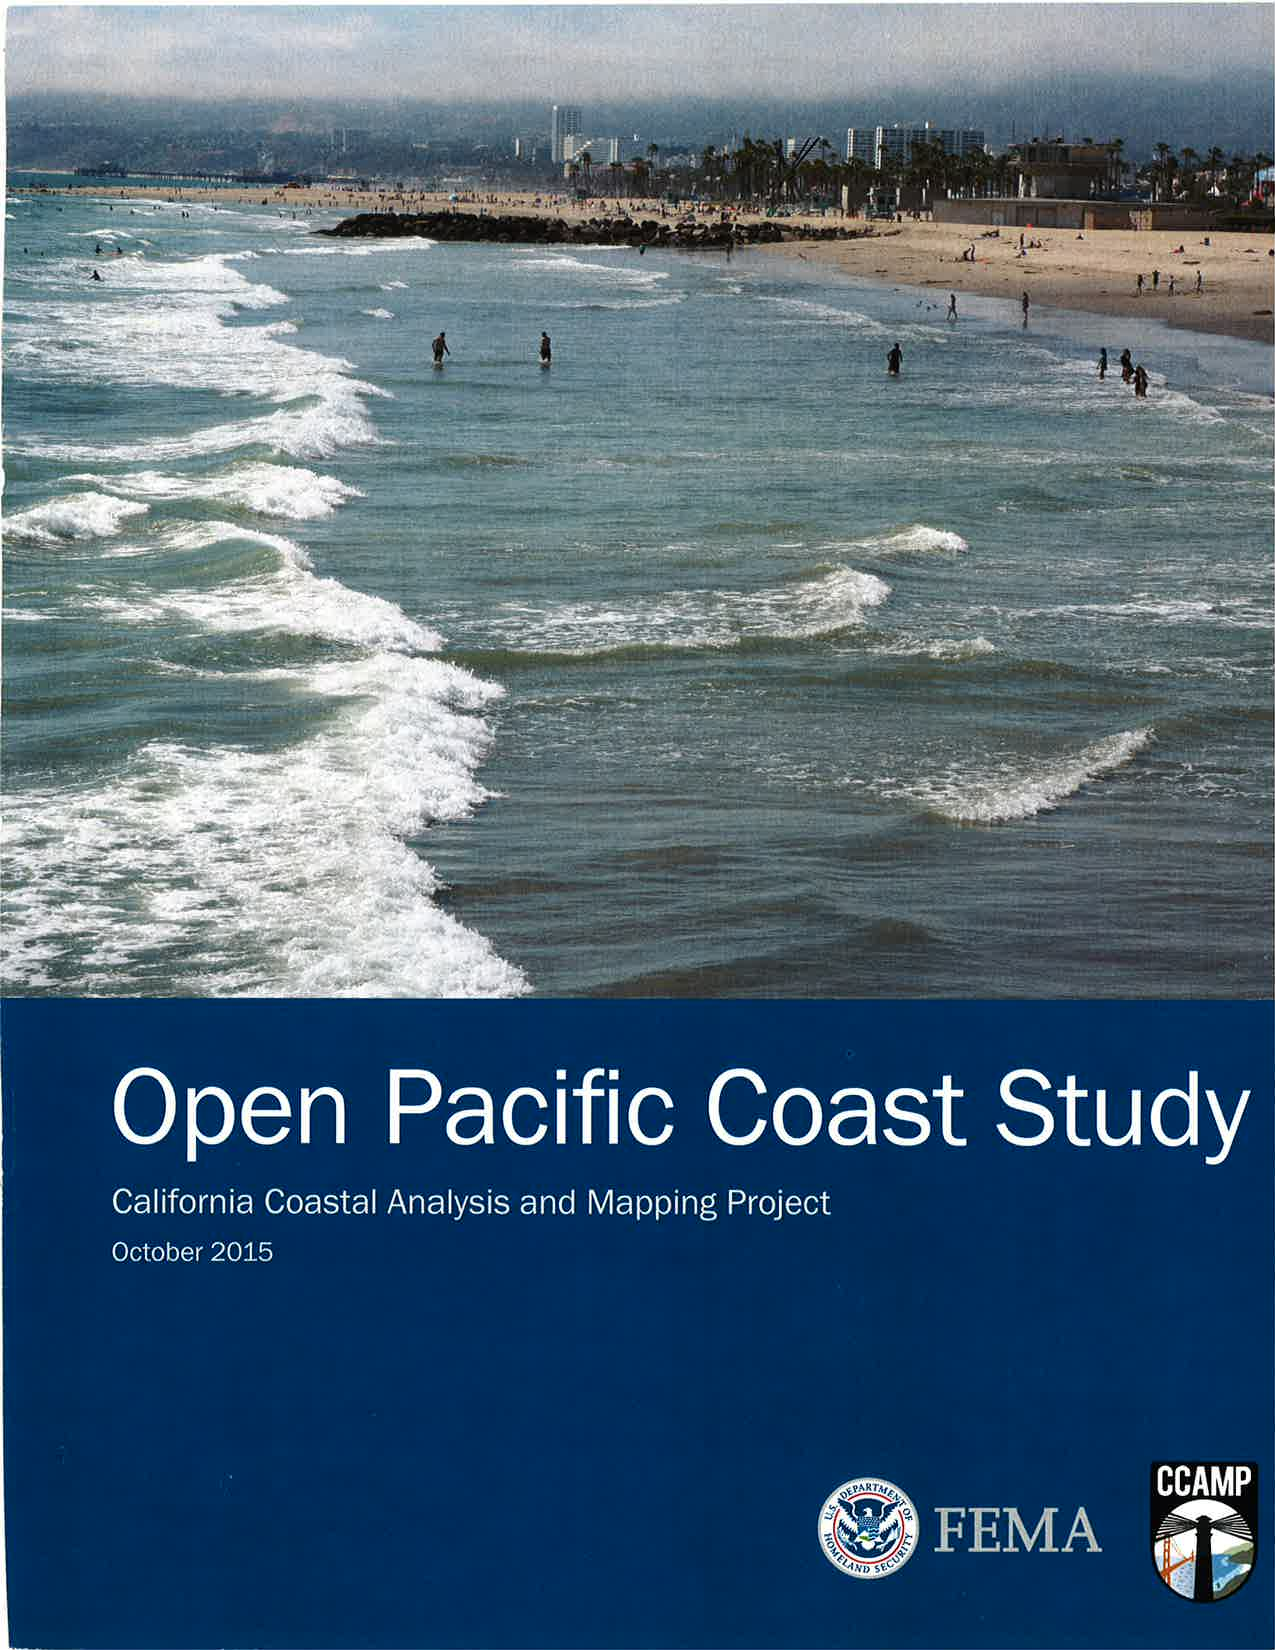 Open Pacific Coast Study 2015